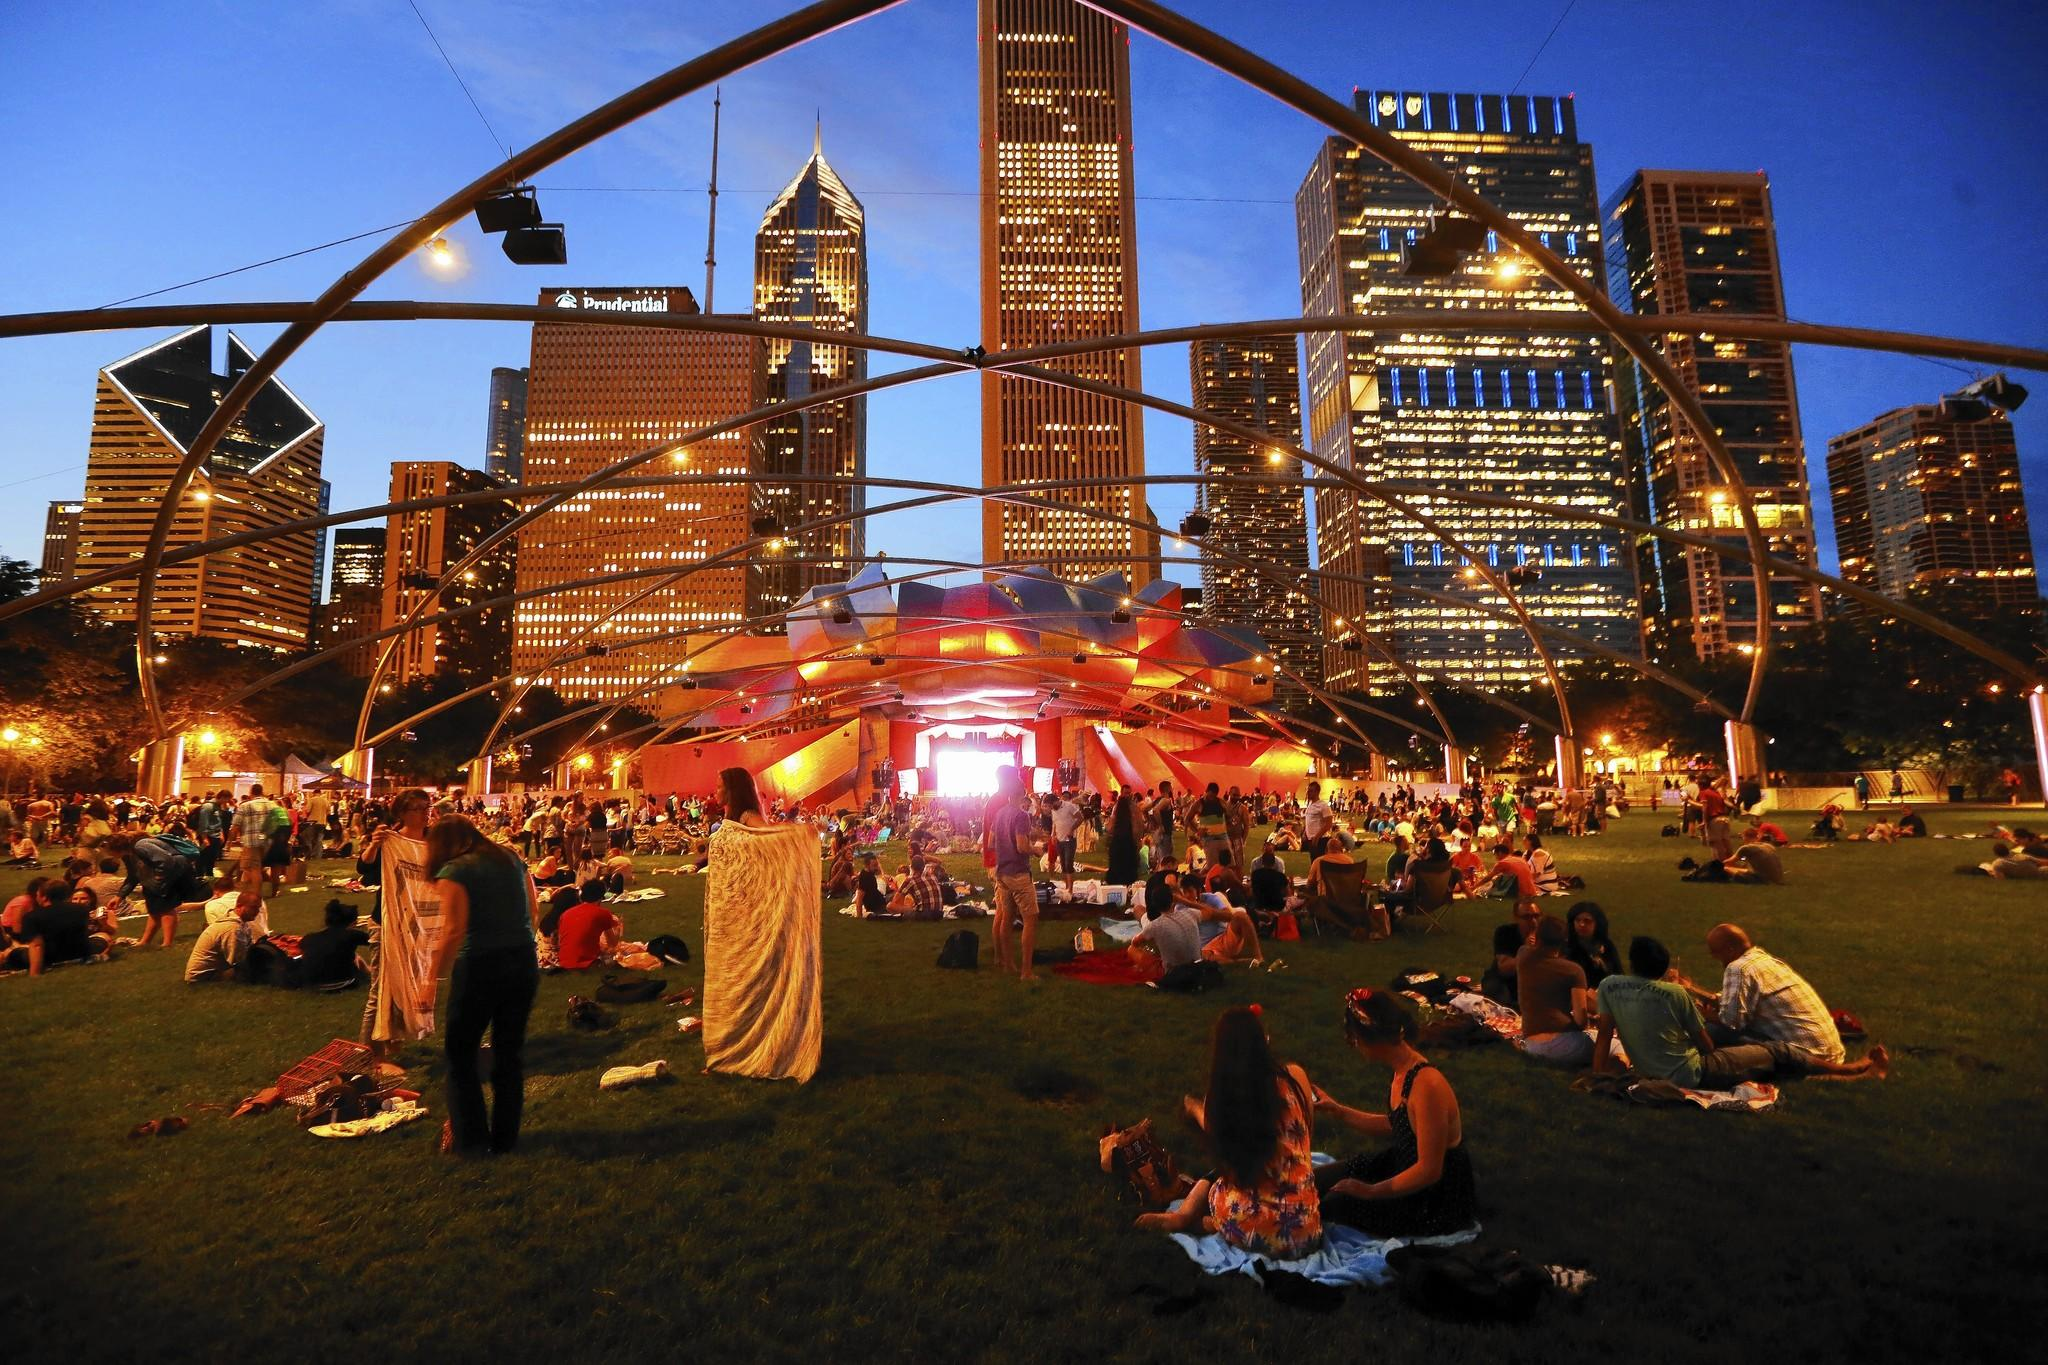 Visitors pack up after a free concert in Millennium Park on June 2 featuring Robbie Fulks at the Pritzker Pavilion. The park is in its tenth year this summer.